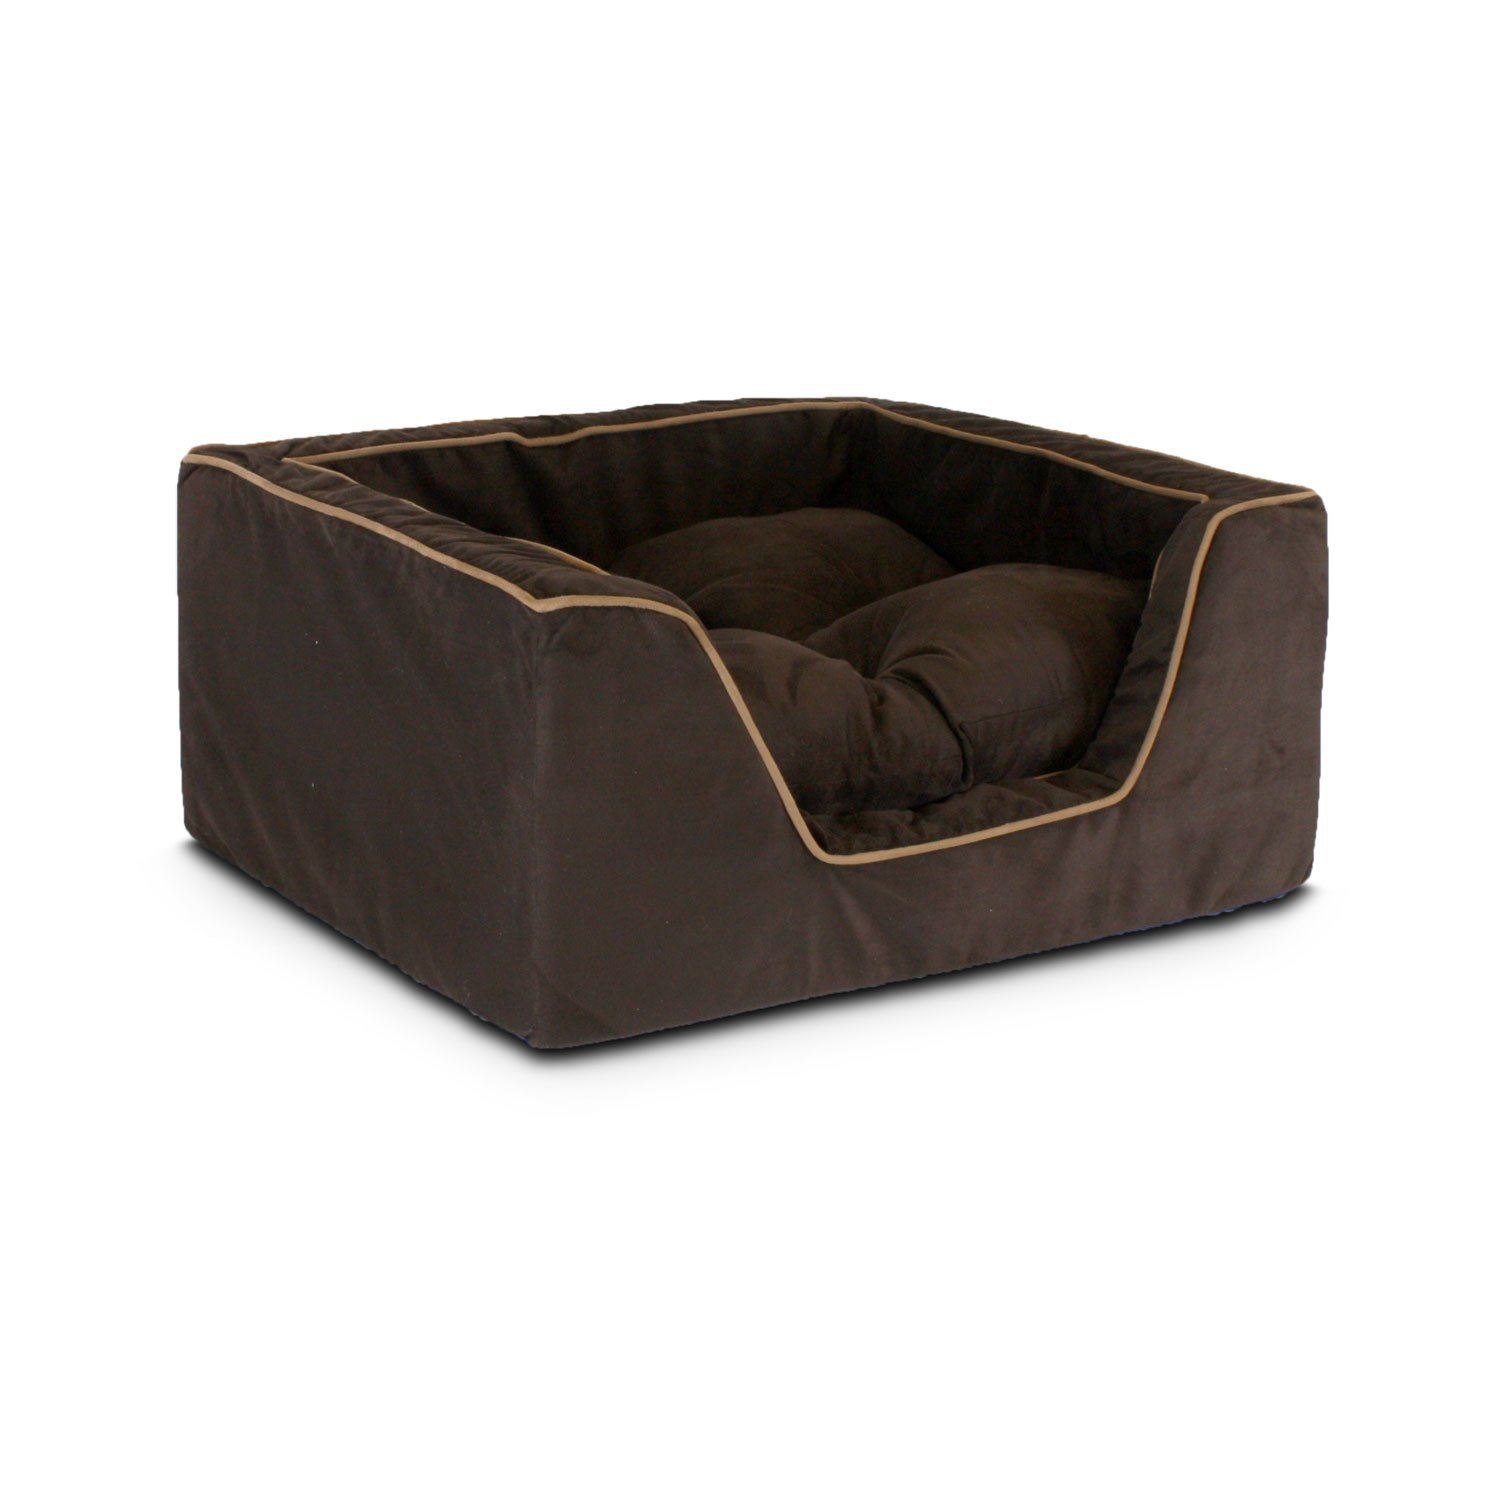 X-Large Snoozer 21493 X-Large Luxury Square Pet Bed, Hot Fudge Cafe